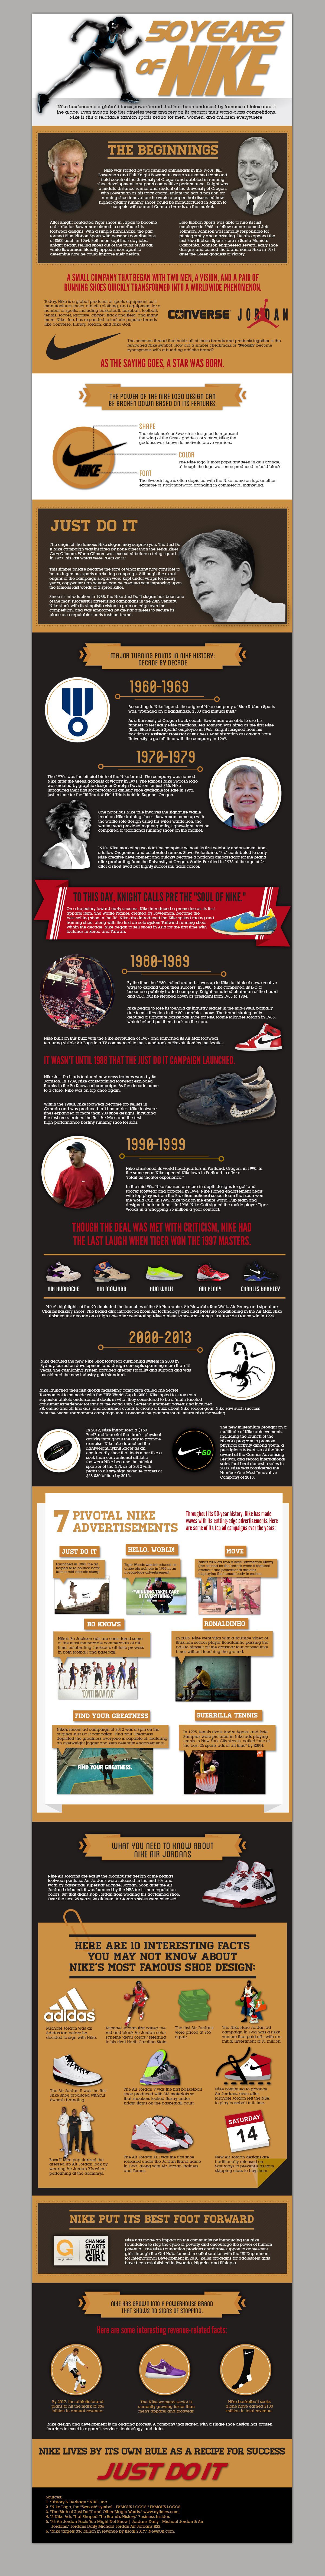 nike 50 Years of Nike Infographic